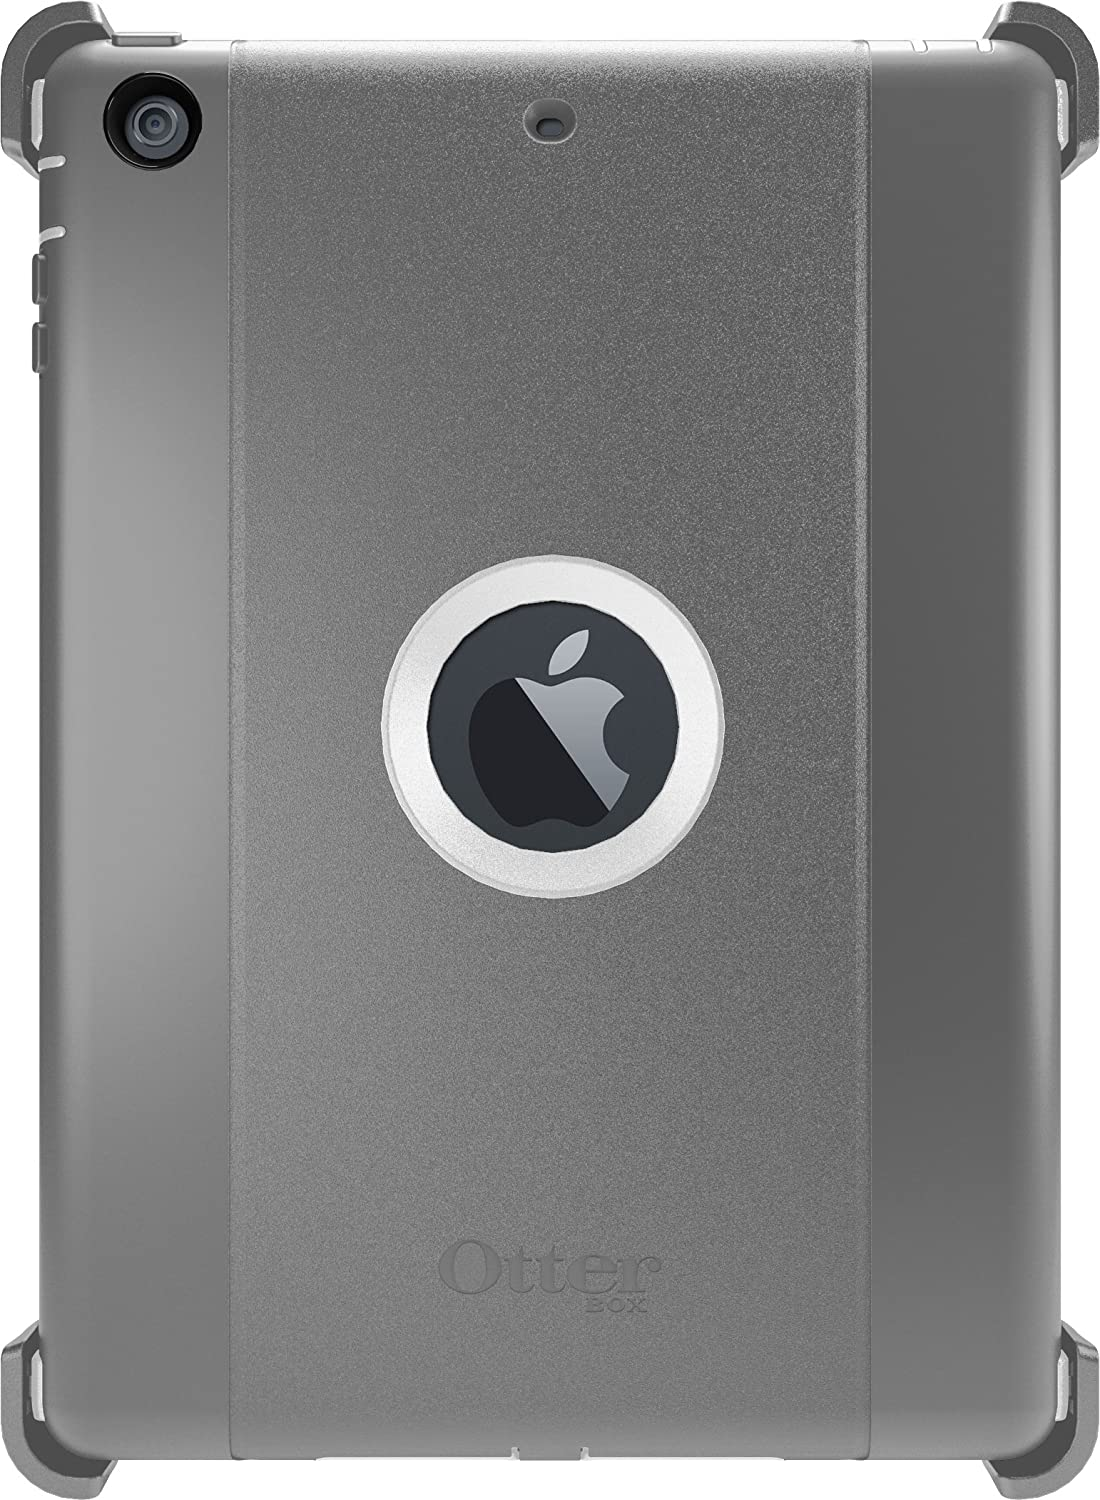 OtterBox Defender Case iPad Air Image 3